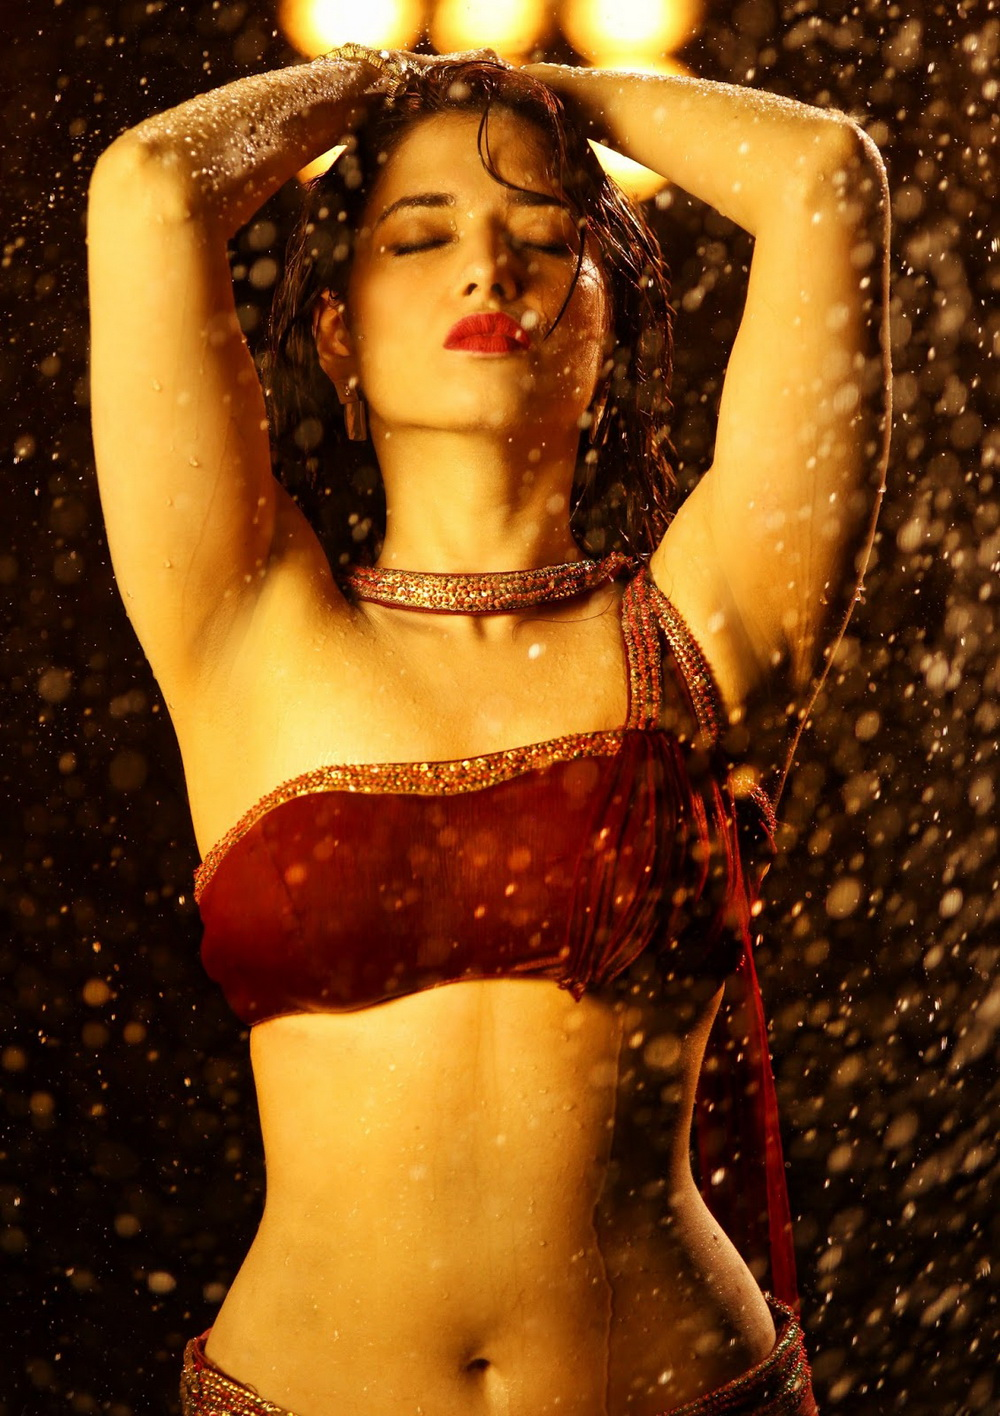 Naked pics from bengali movies naked gallery